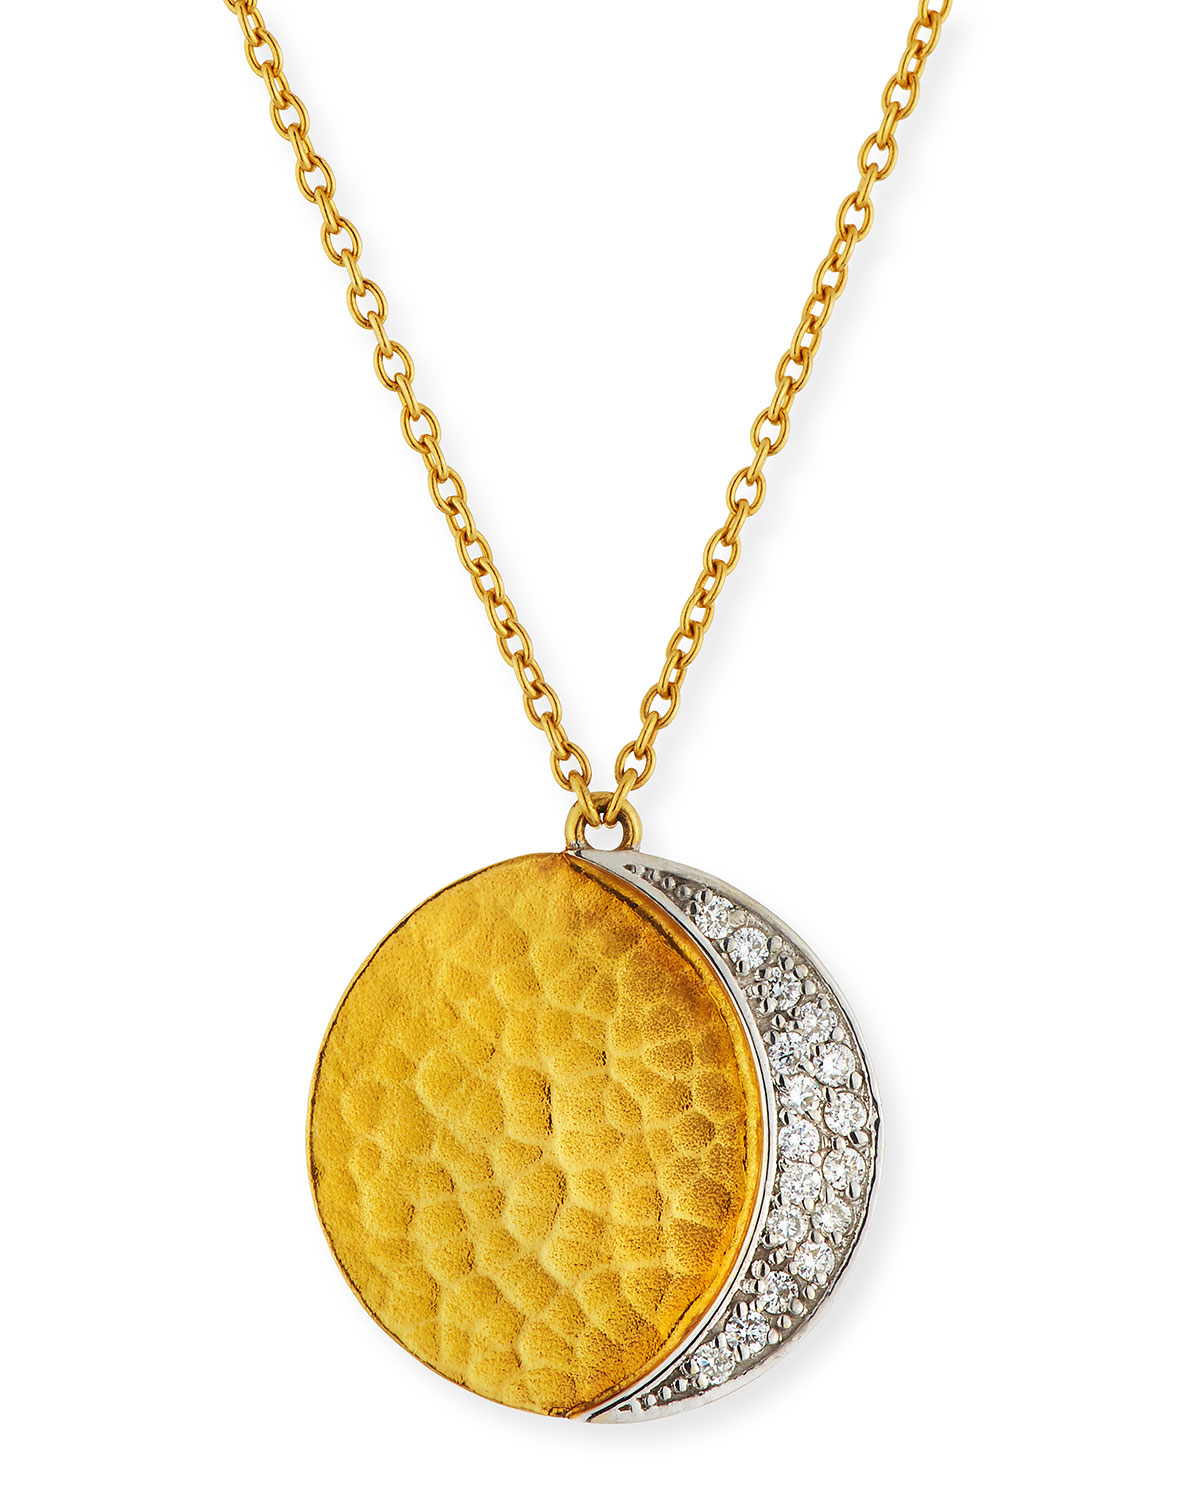 Gurhan 24k gold mango diamond pave pendant necklace neiman marcus 24k gold mango diamond pave pendant necklace aloadofball Images